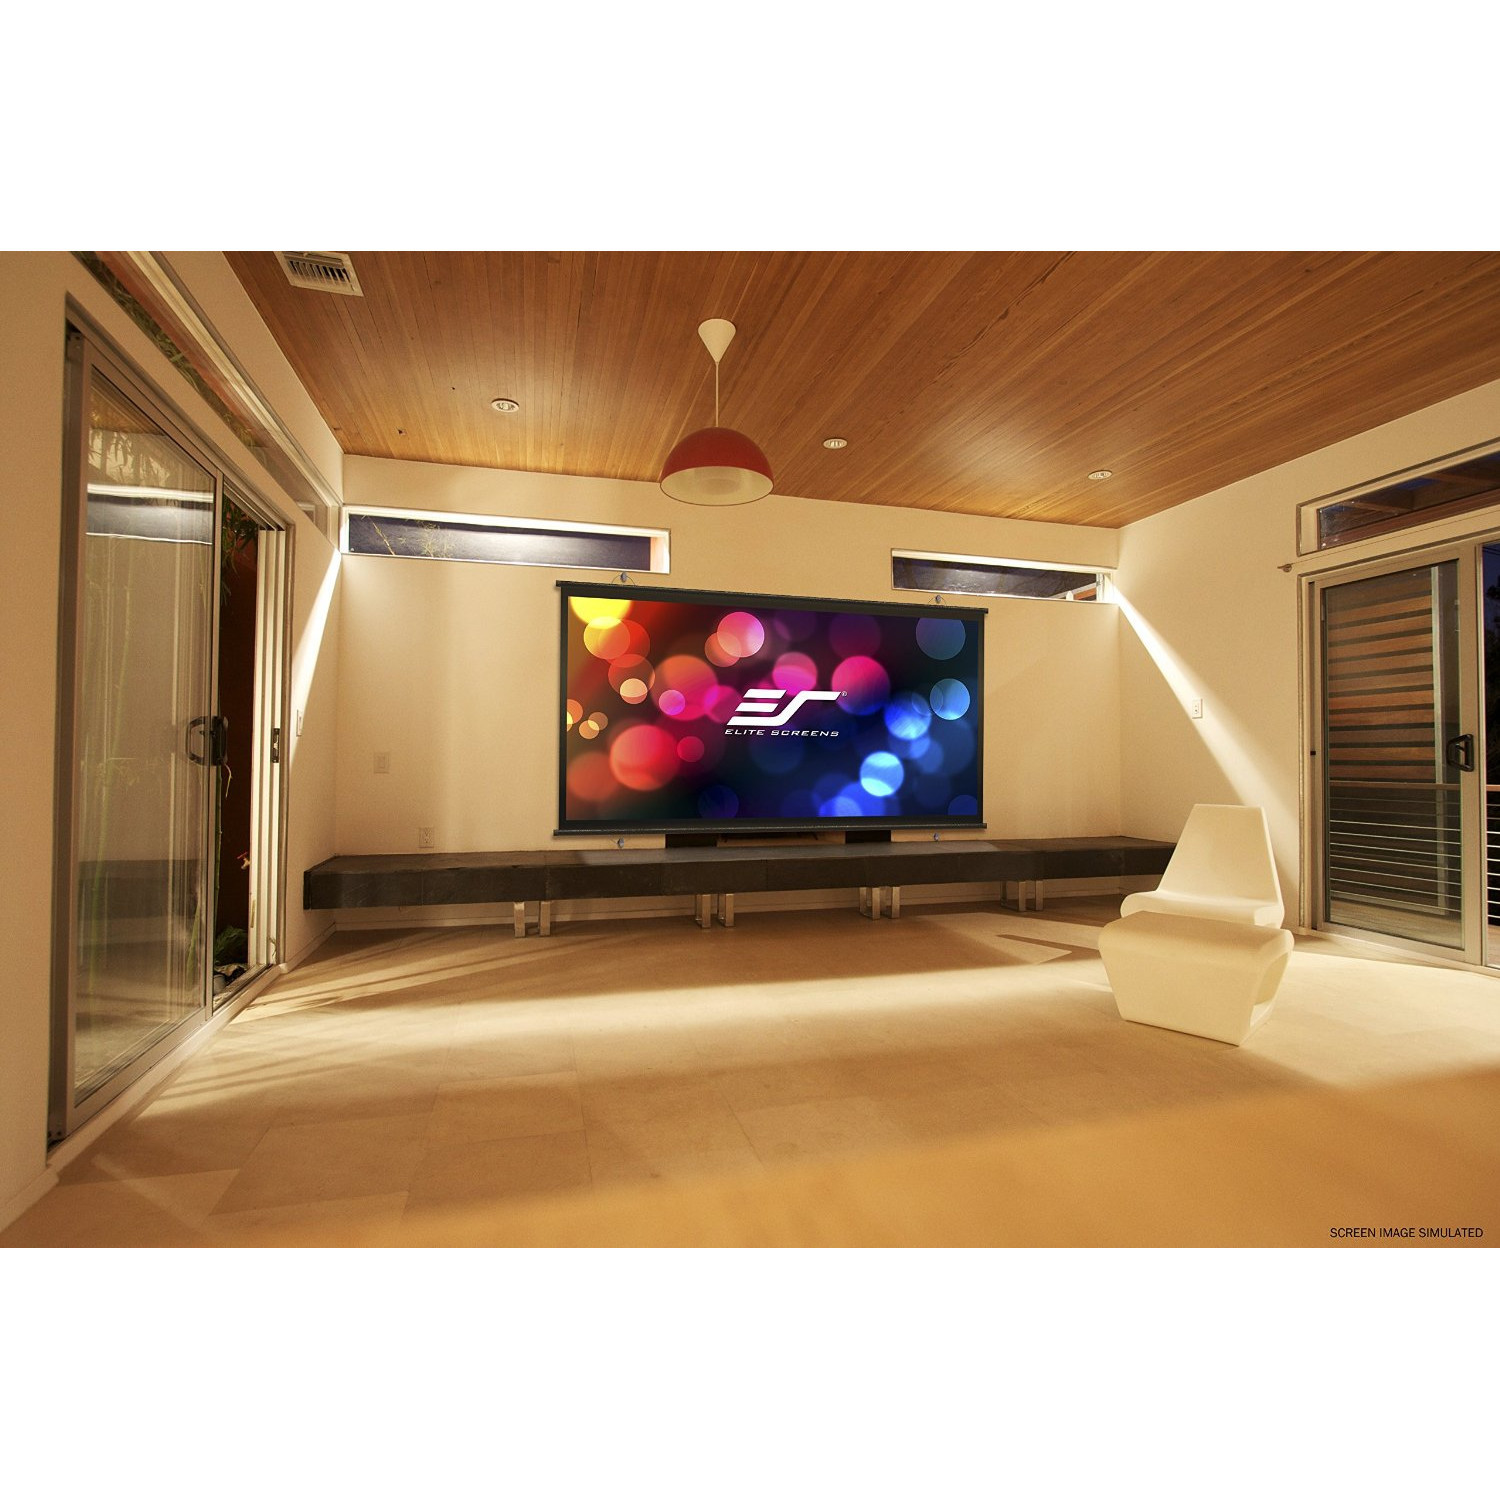 Best ideas about DIY Portable Projection Screen . Save or Pin Elite Screens DIY White Portable Projection Screen Now.